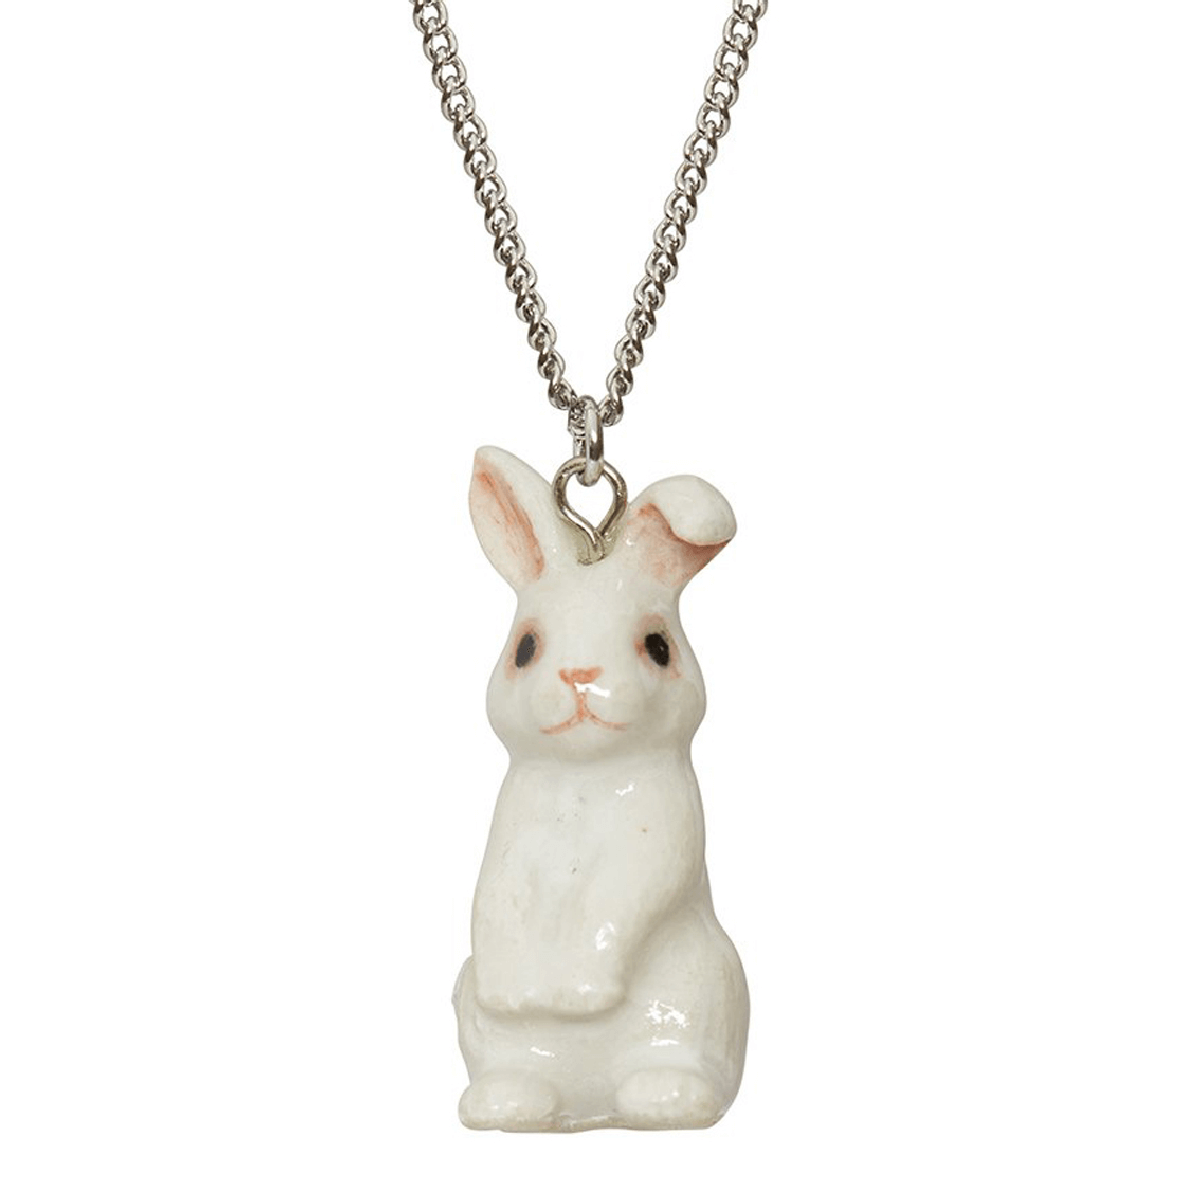 And Mary, collier pendentif en porcelaine Lapin blanc assis - cassisroyal.com